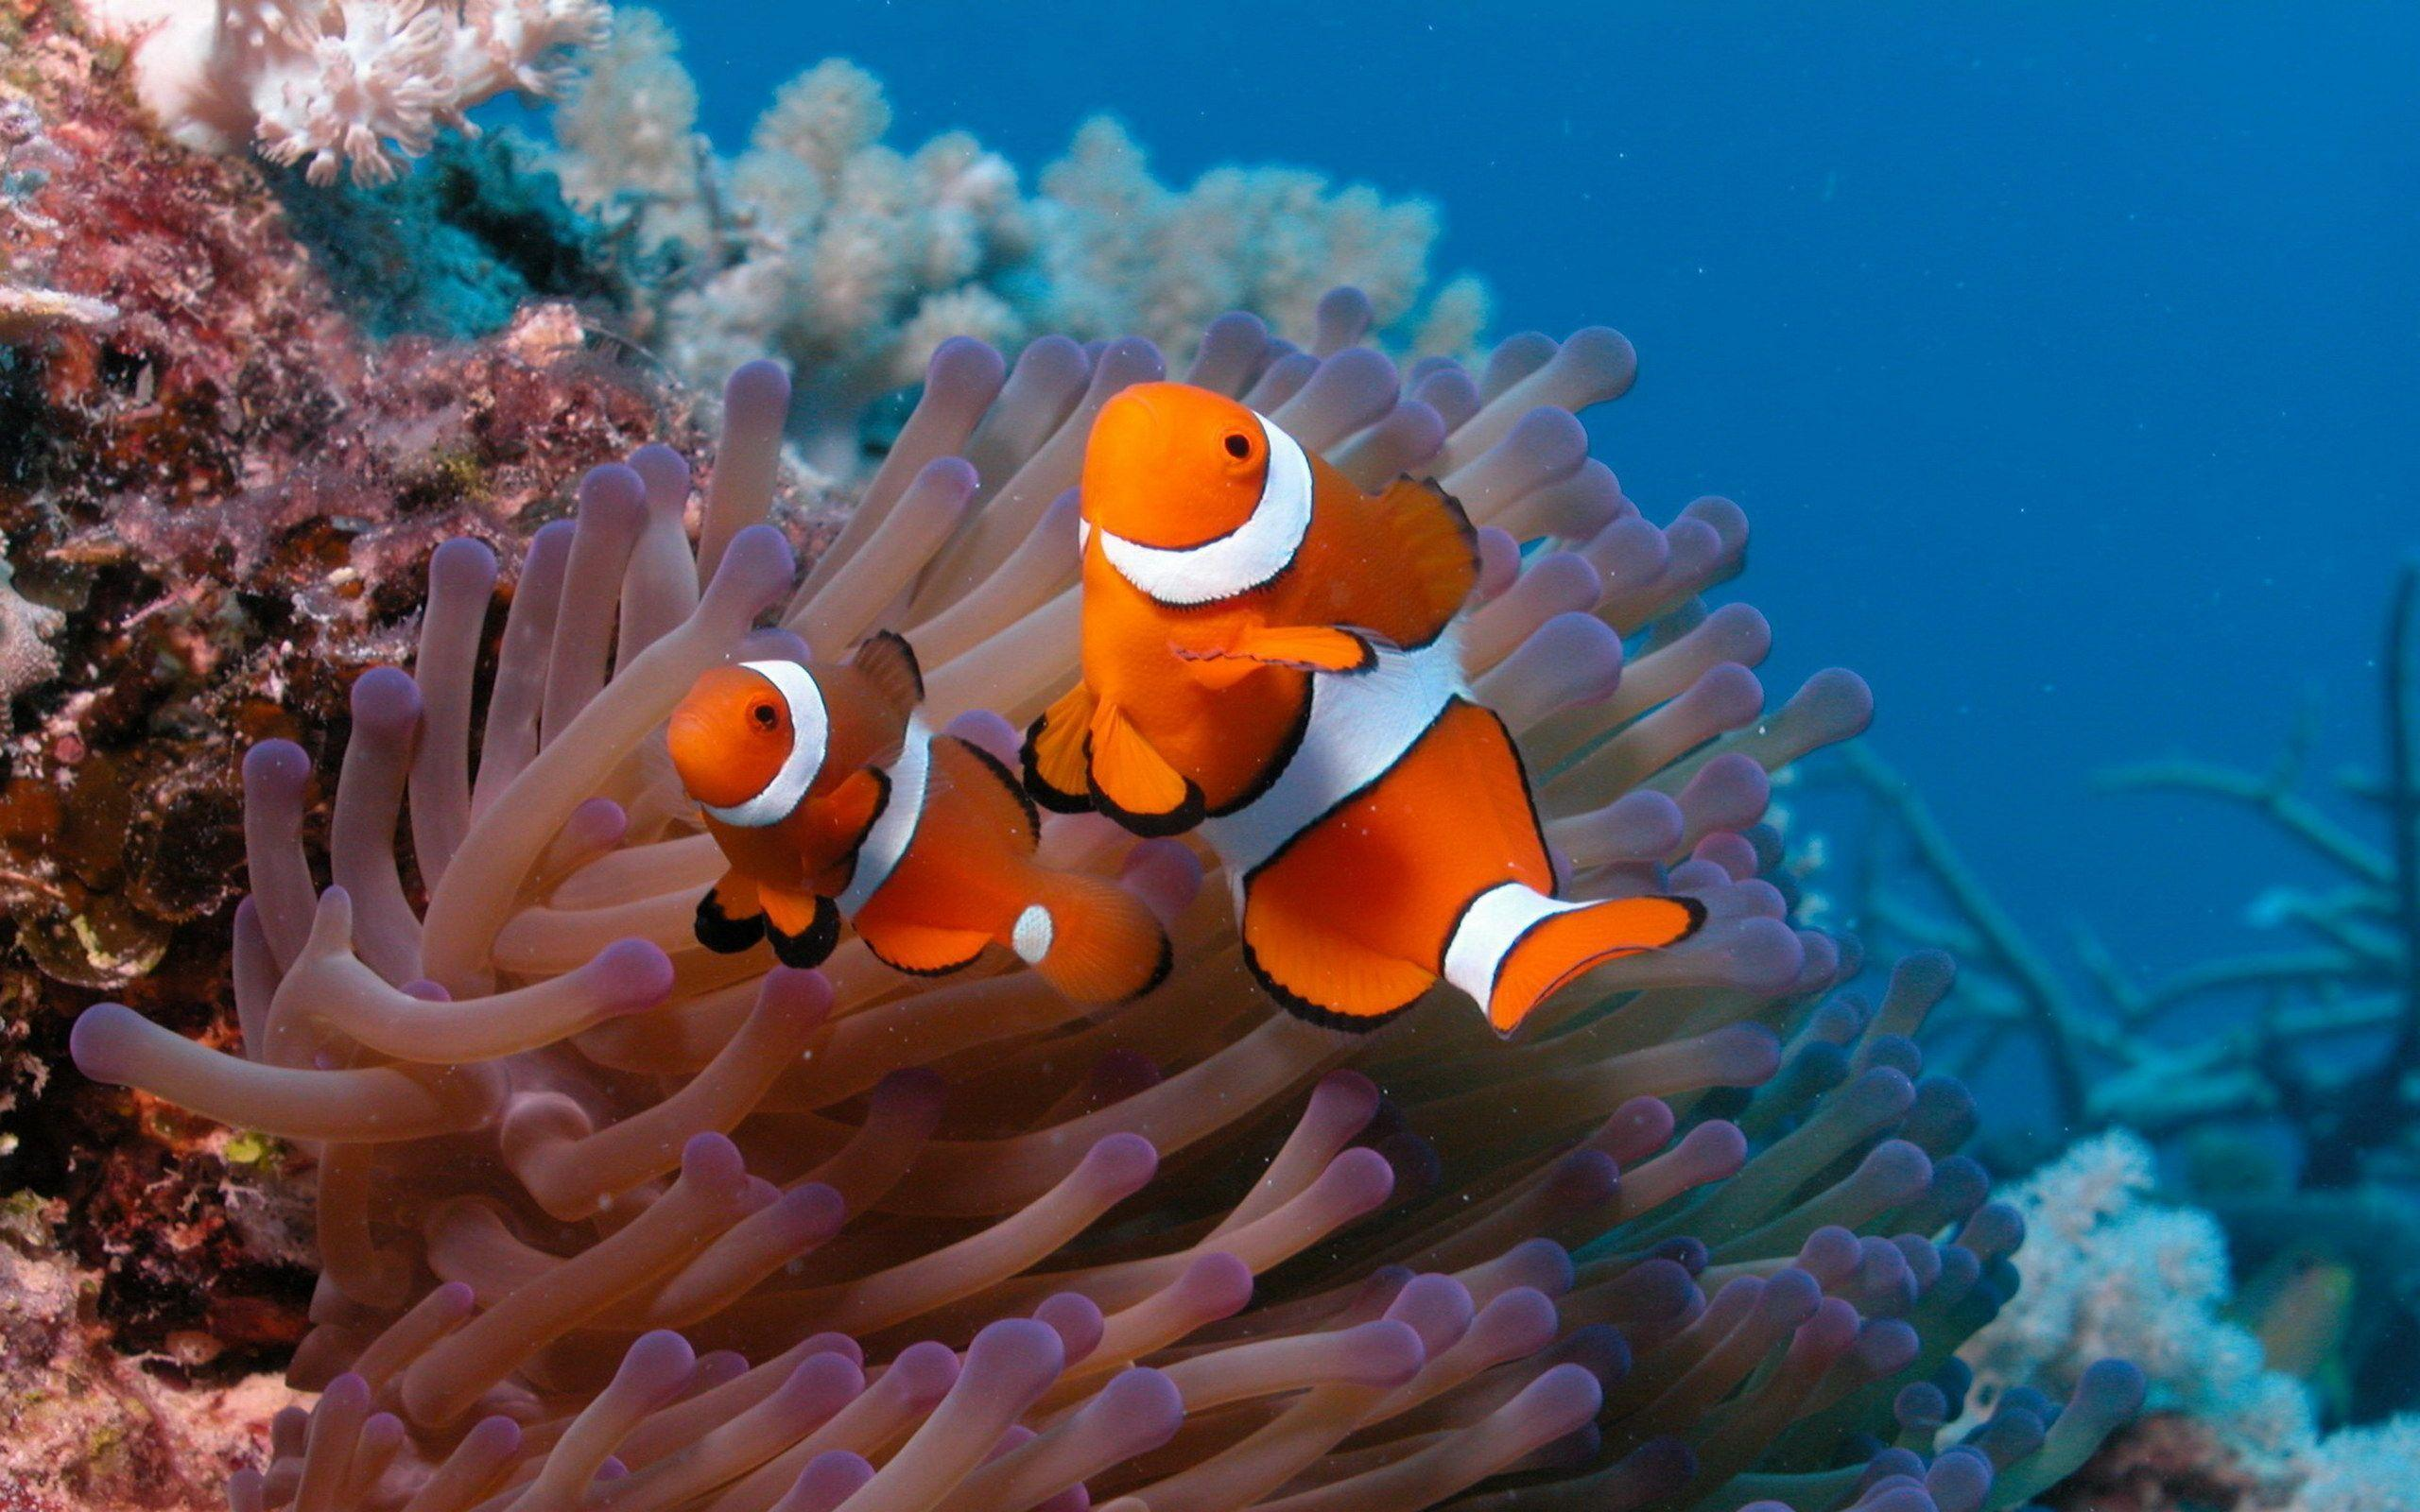 Coral Reef Fish Wallpapers - HD Wallpapers Inn